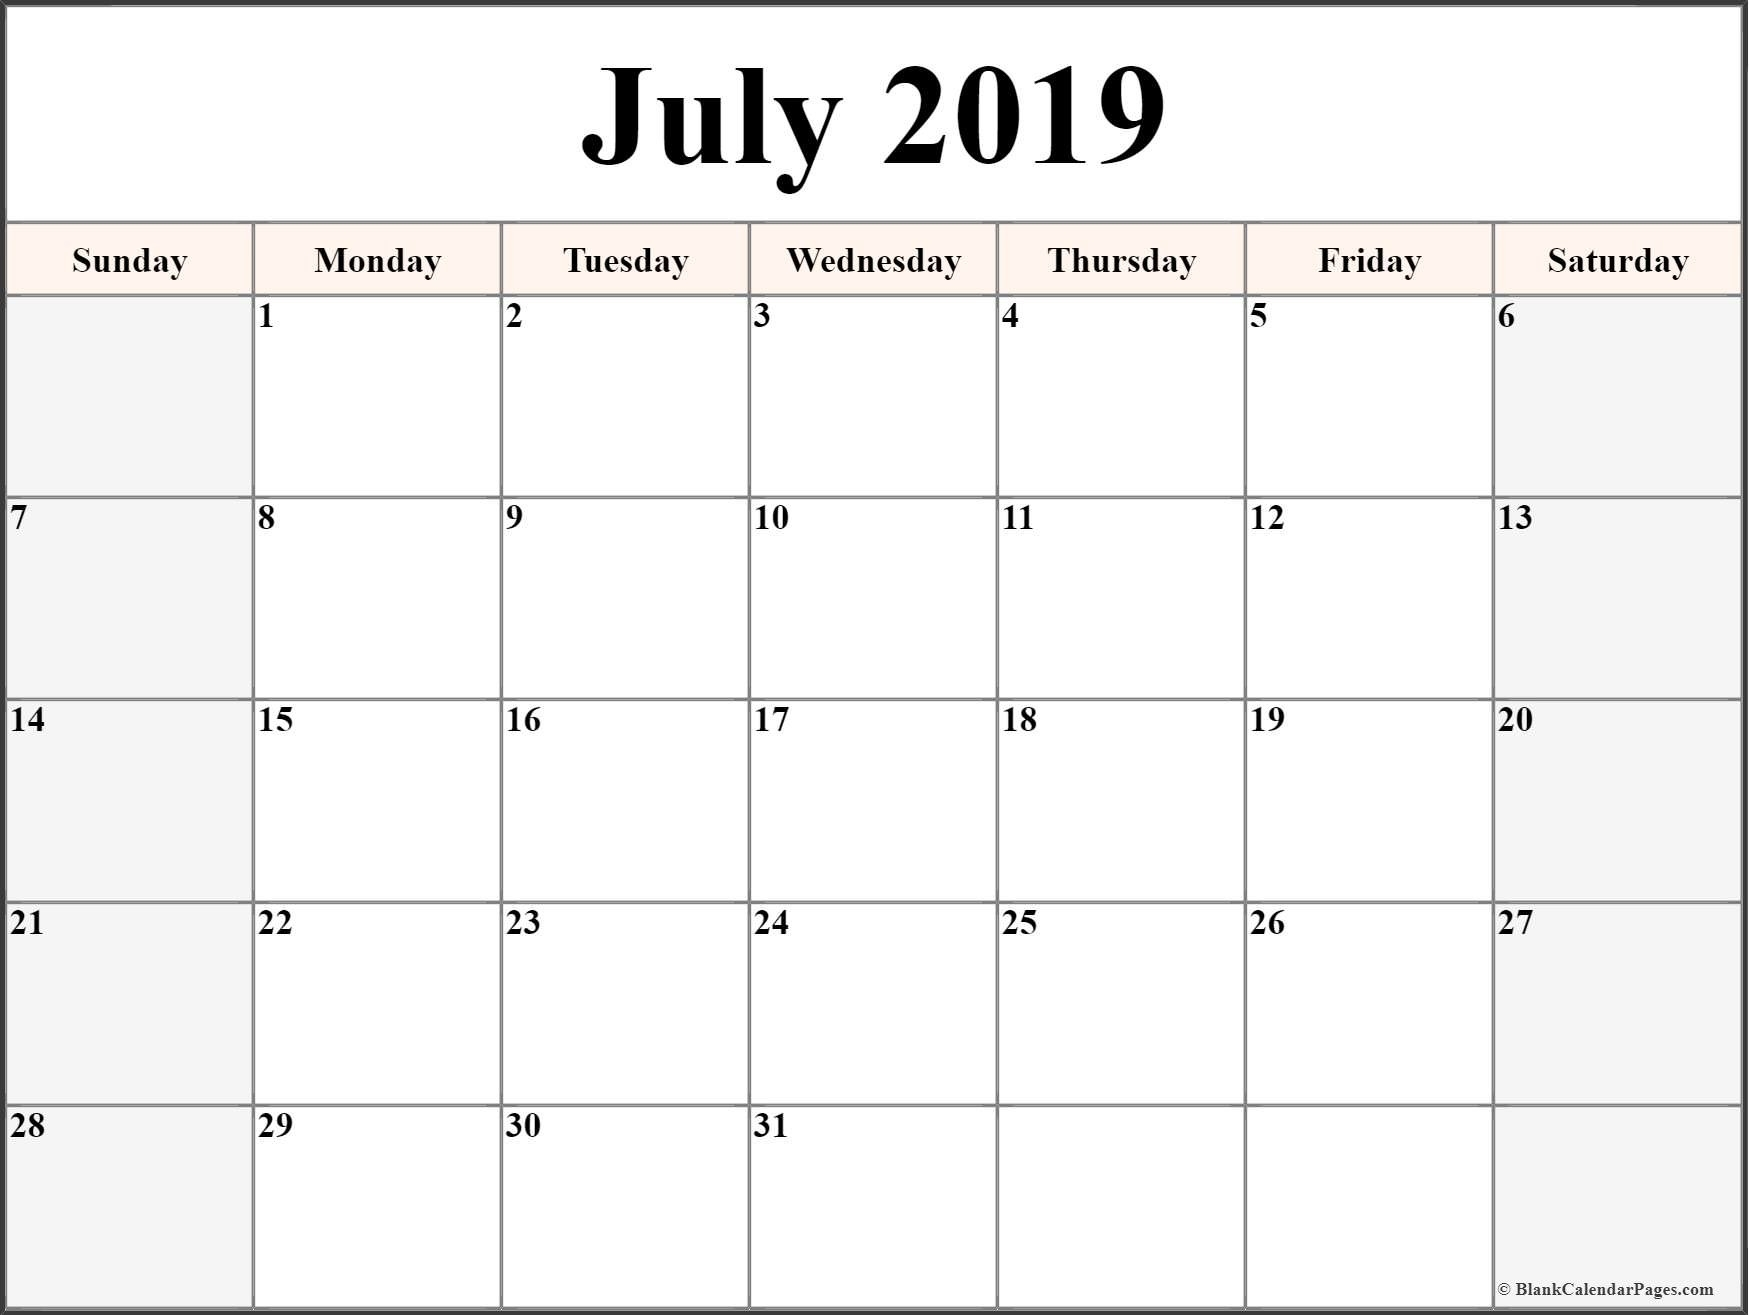 July 2019 Blank Calendar Collection.-Free Fill In Printable Calendars